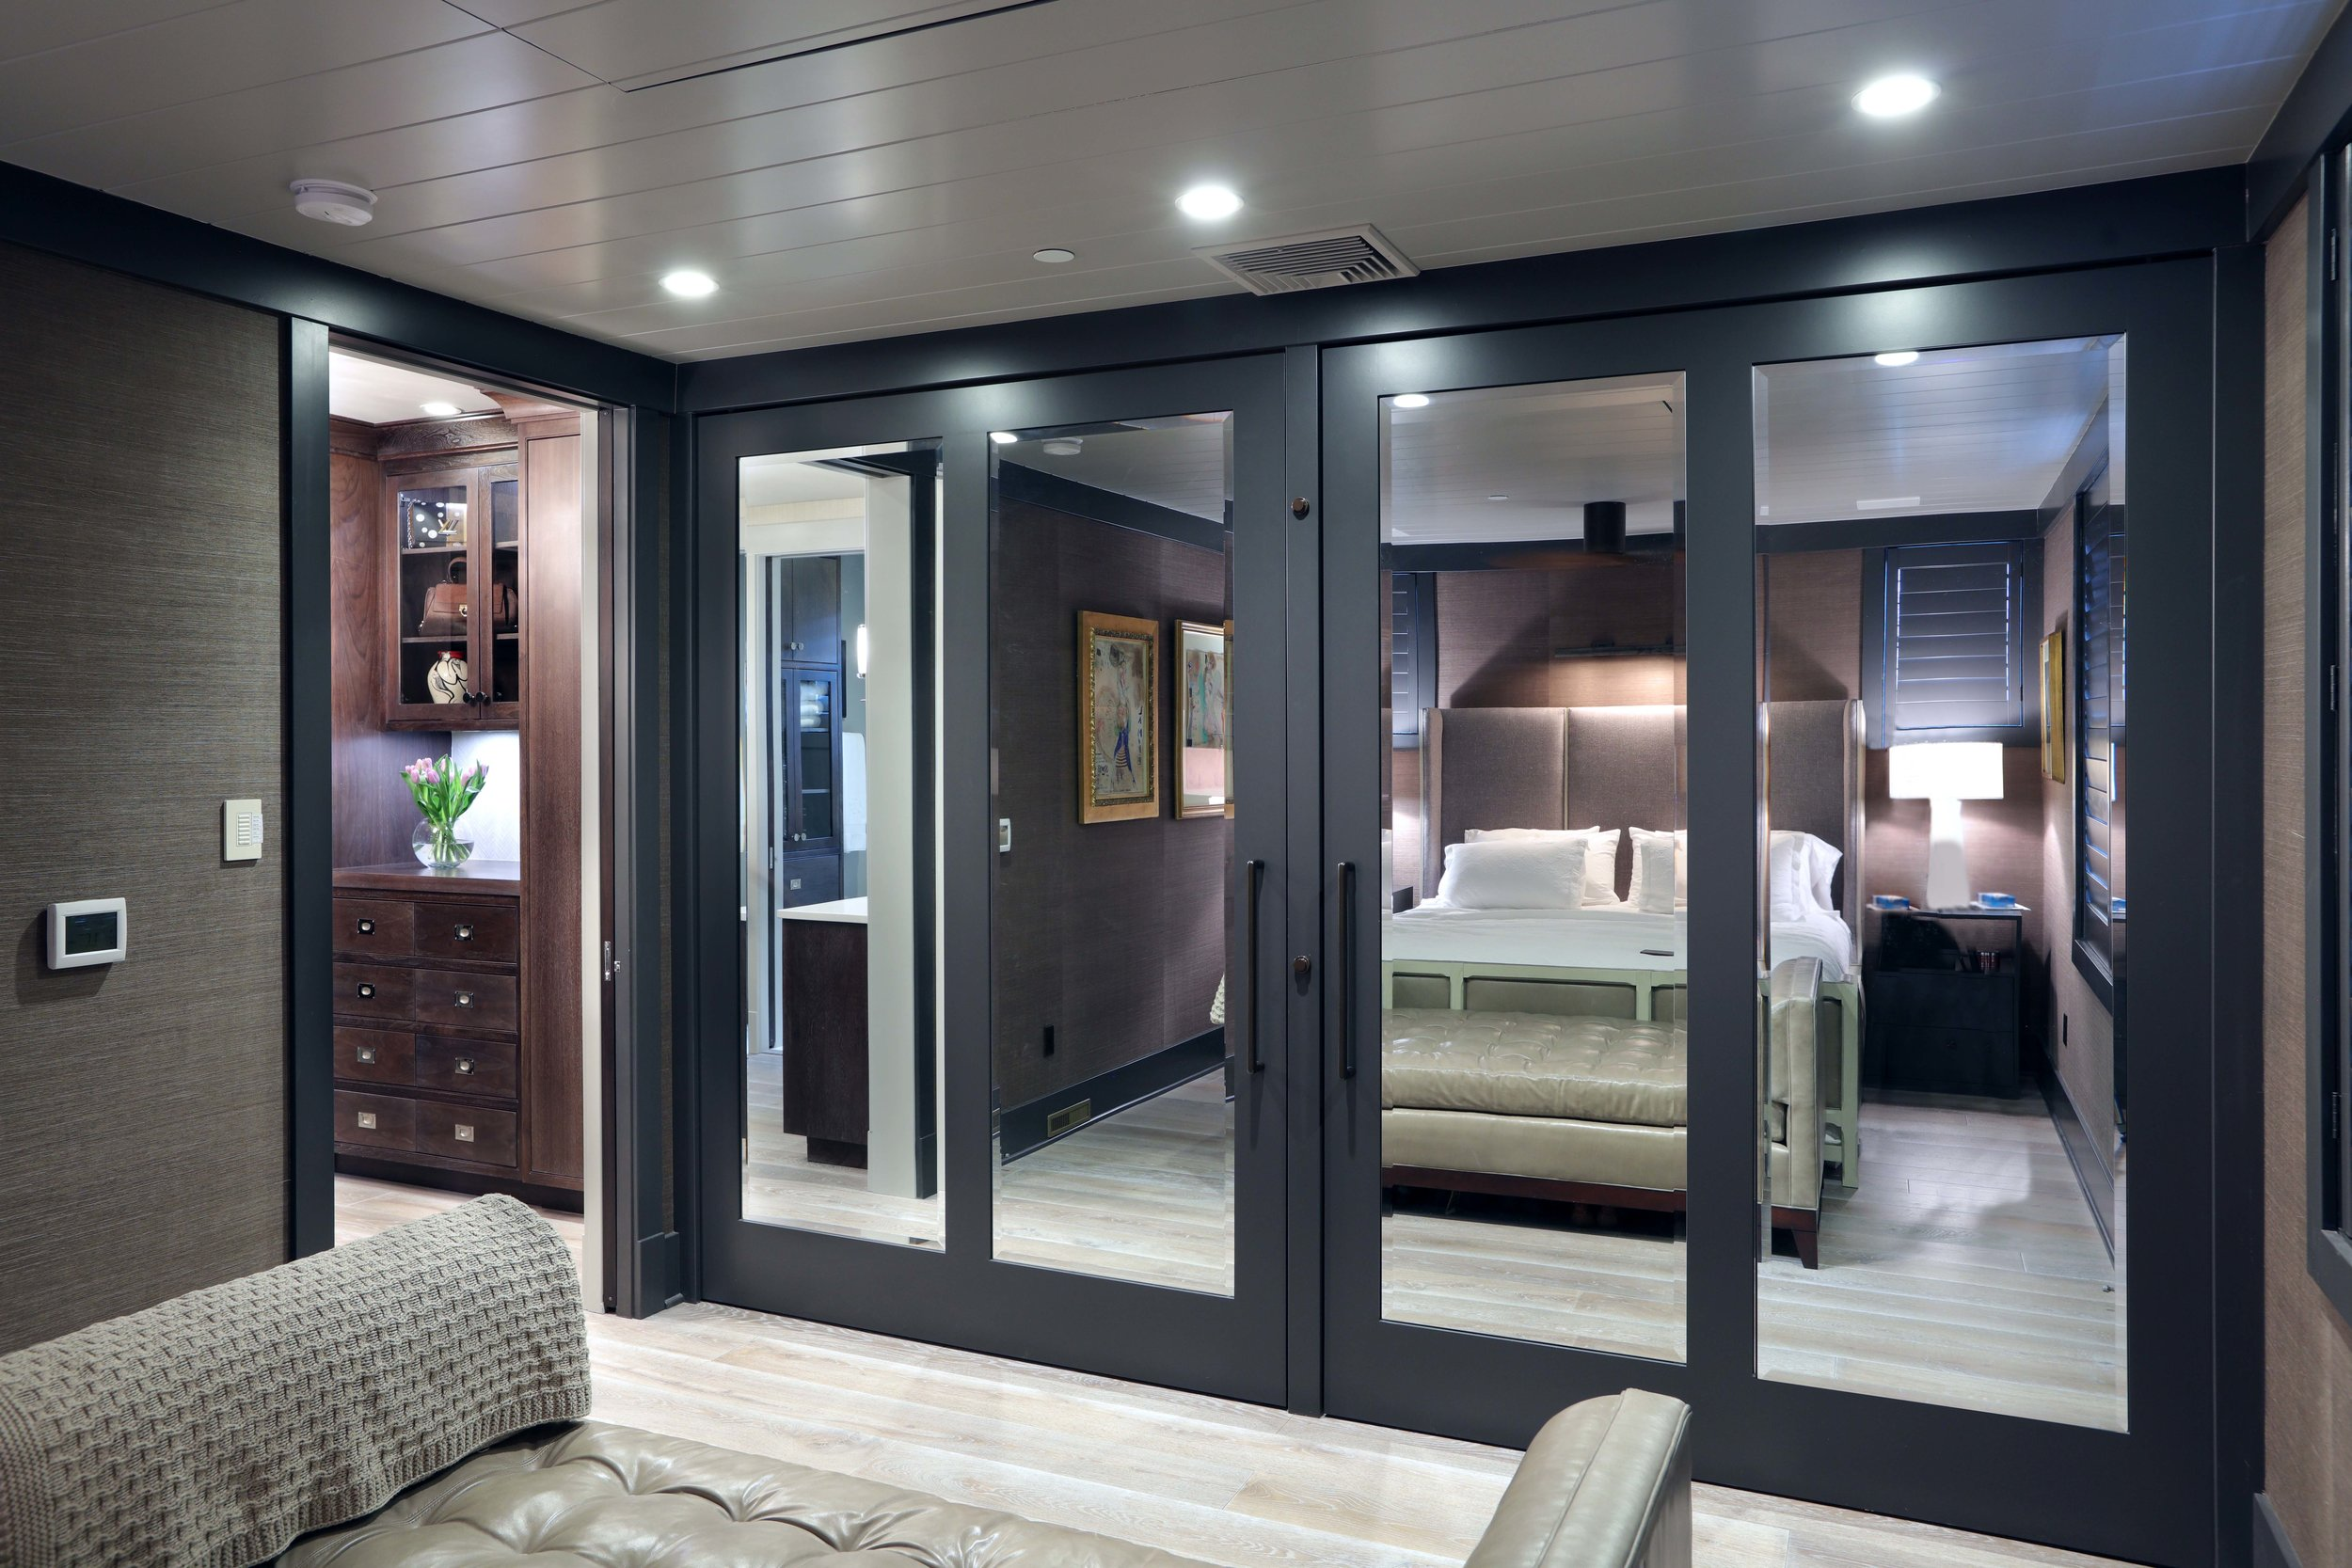 Vision-Interiors-Visbeen-Showroom-Grand-Rapids-Residence-Closet.jpg